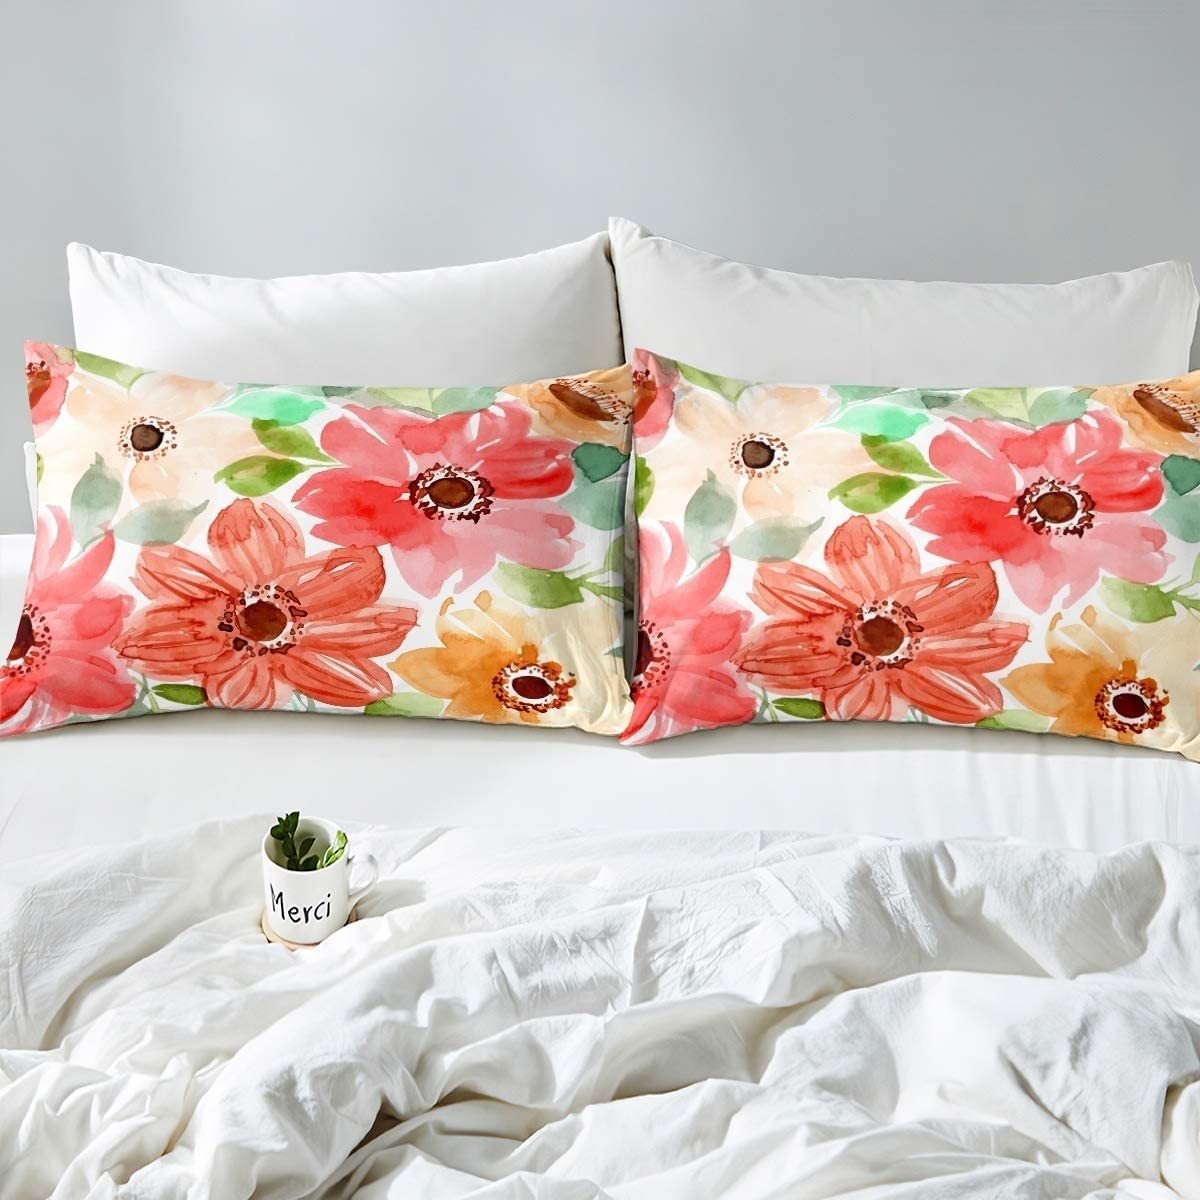 1 Fitted Sheet + 1 Pillow Case Loussiesd Flower Fitted Sheet for Kids Girls Blooming Flowers Decor Bedding Set Soft Polyester Bed Sheet Set 2pcs ,Twin Size